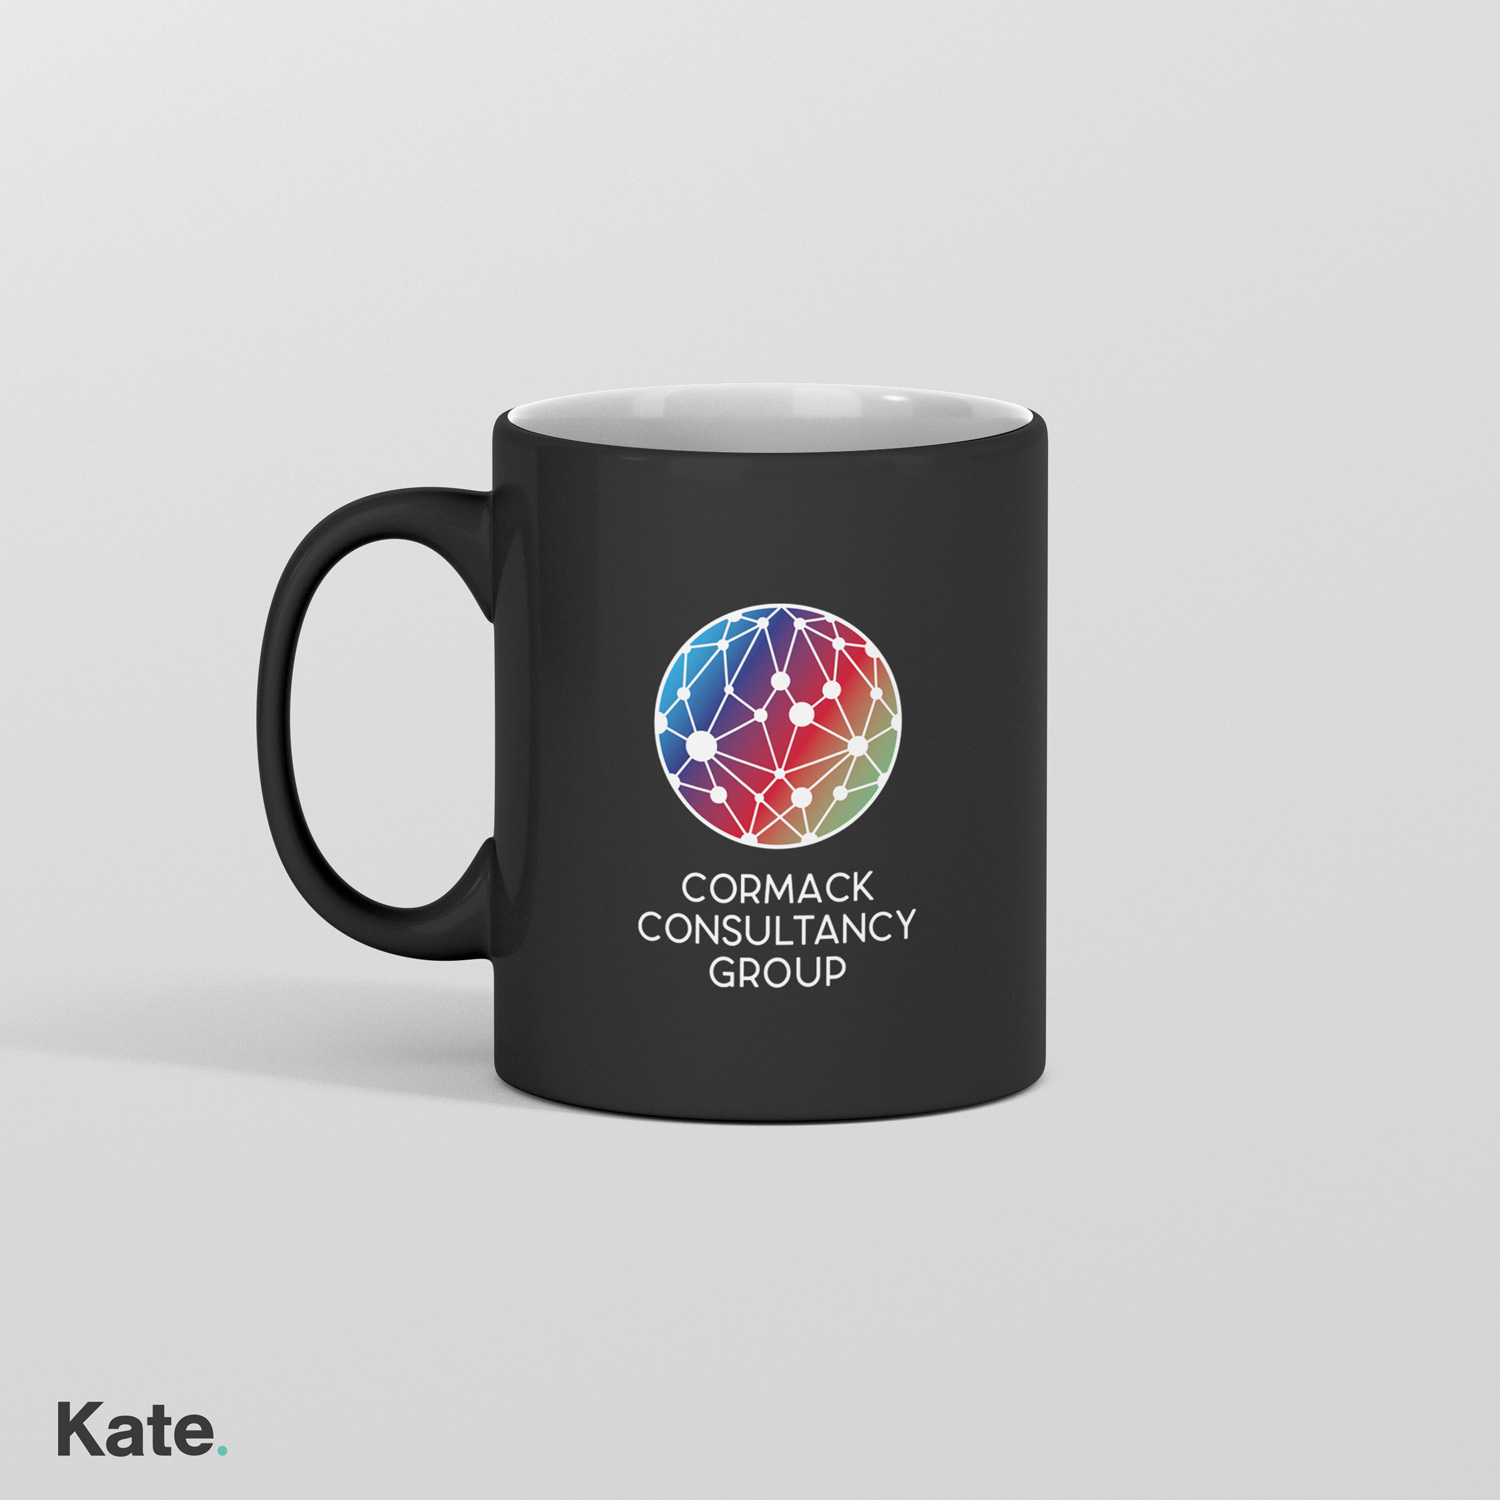 Cormack Consultancy Group Mug